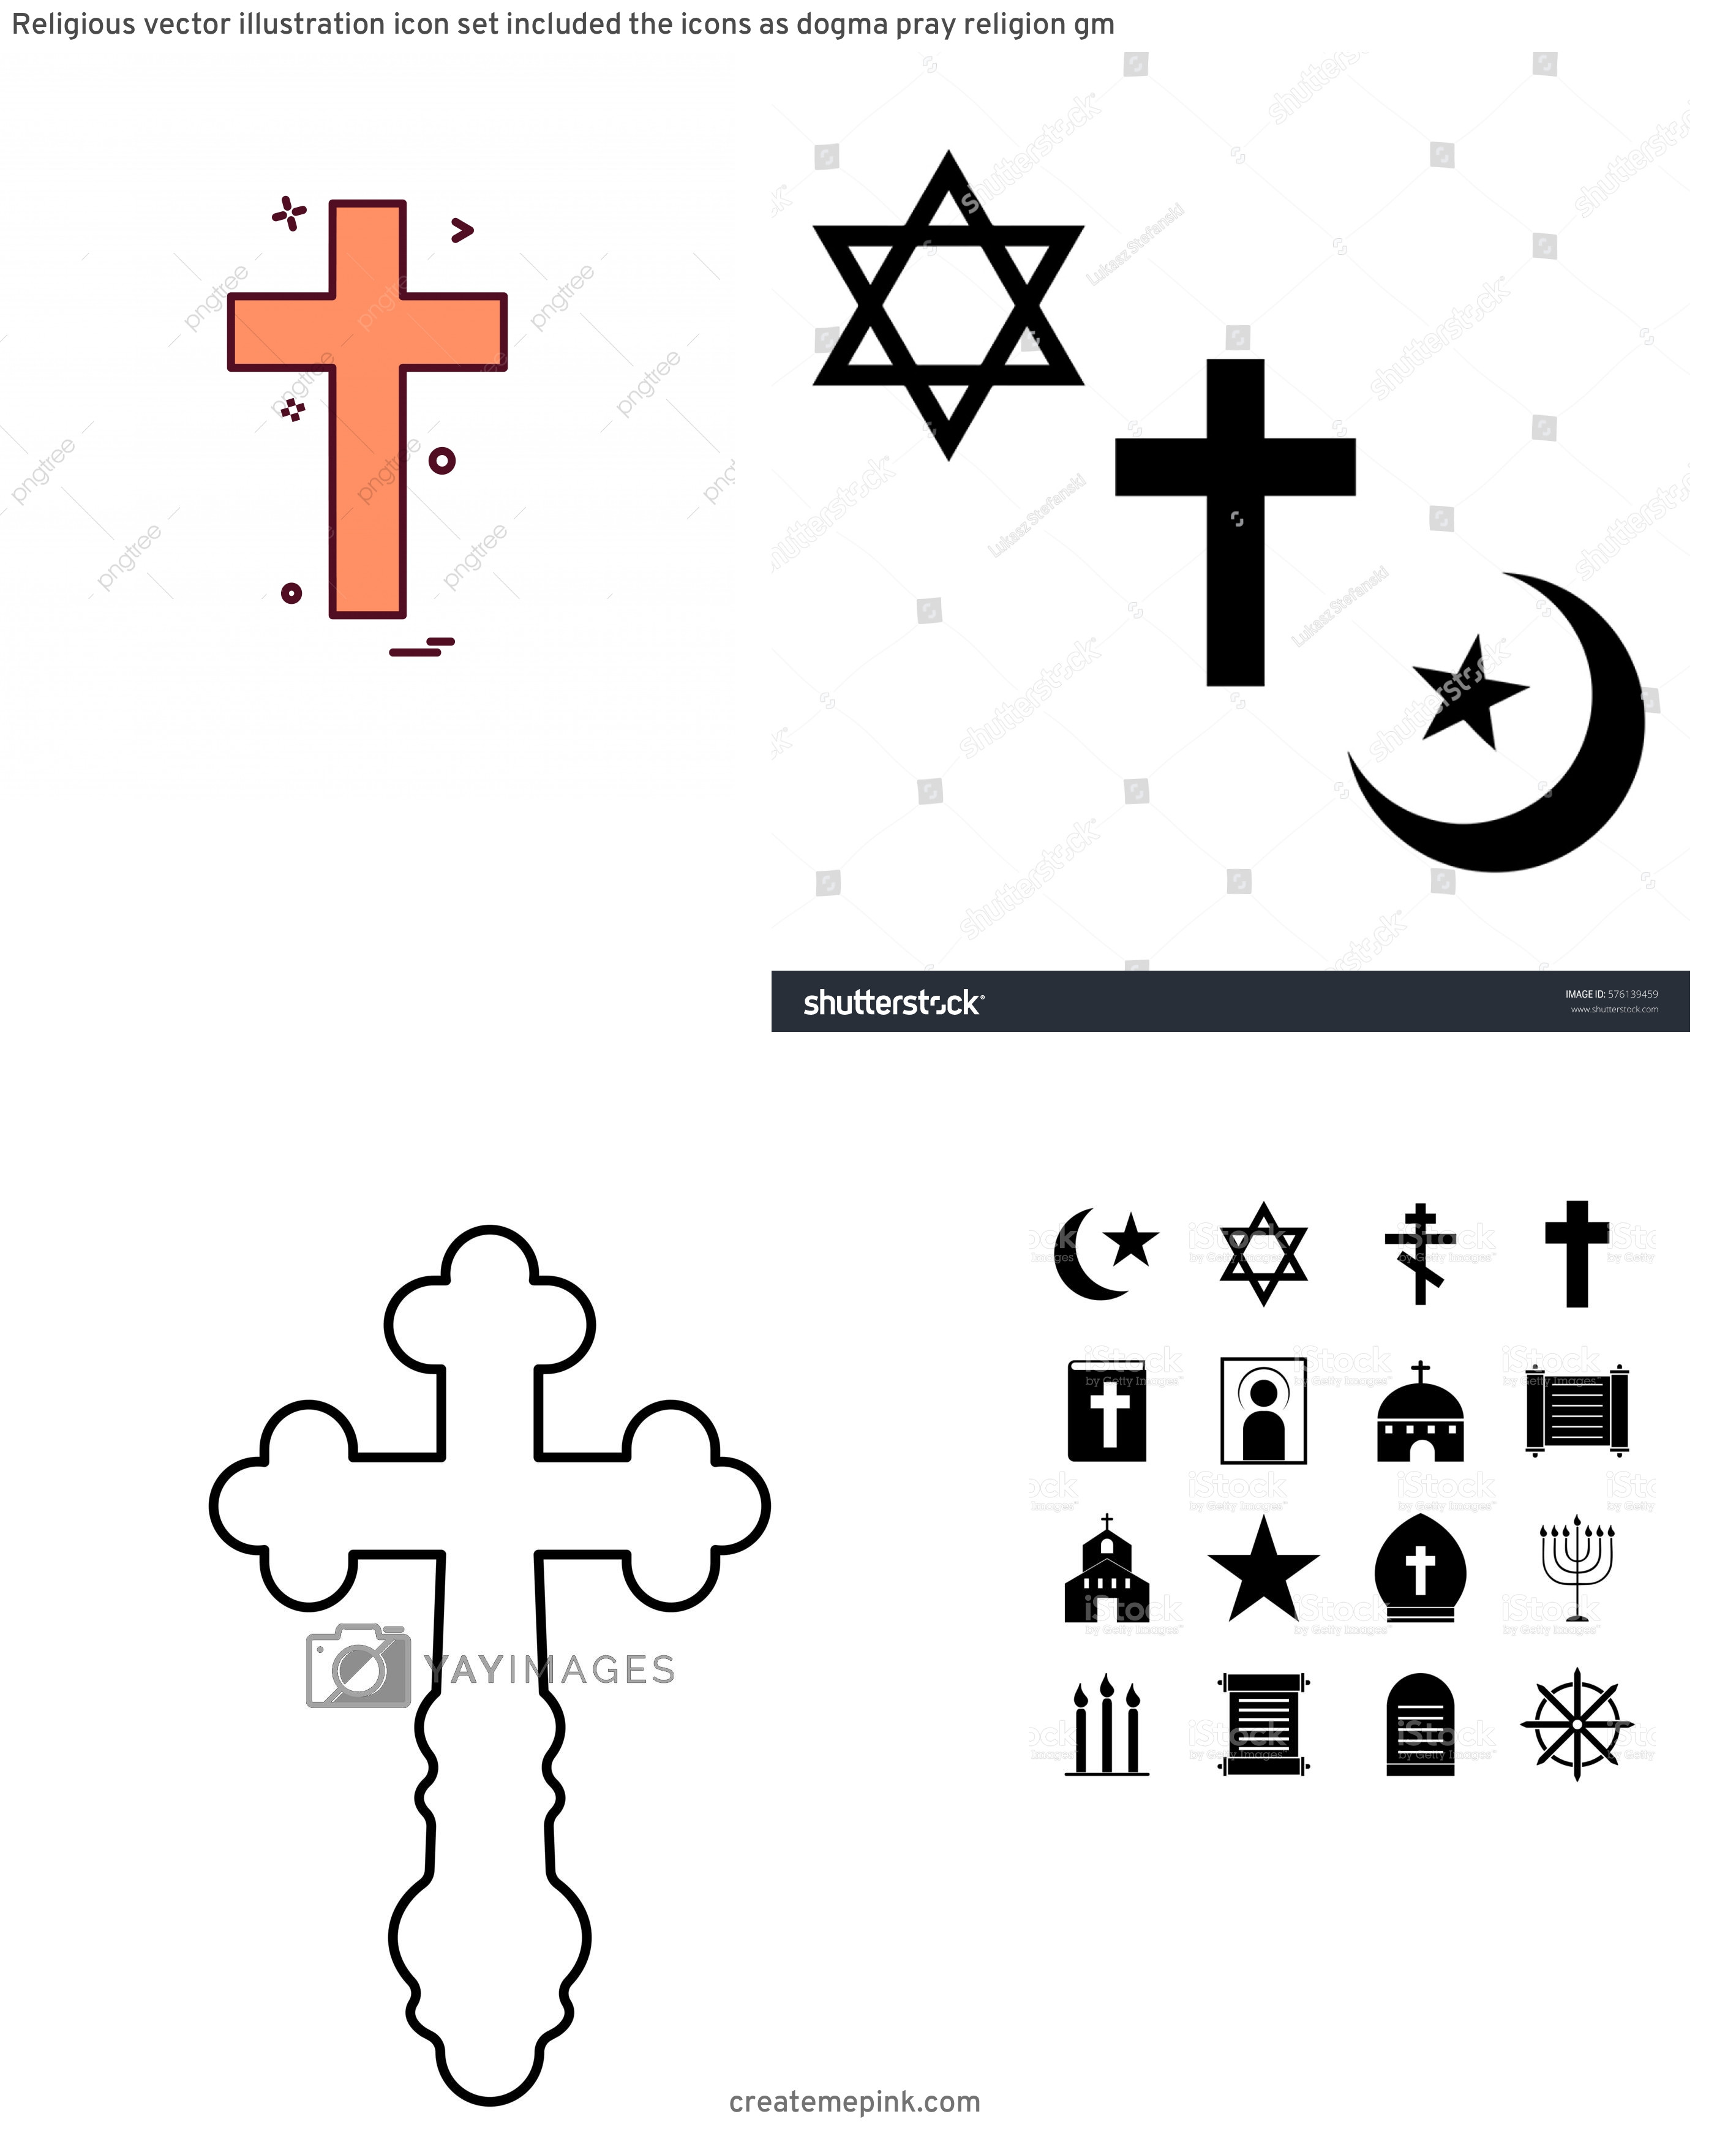 Religous Vectors: Religious Vector Illustration Icon Set Included The Icons As Dogma Pray Religion Gm